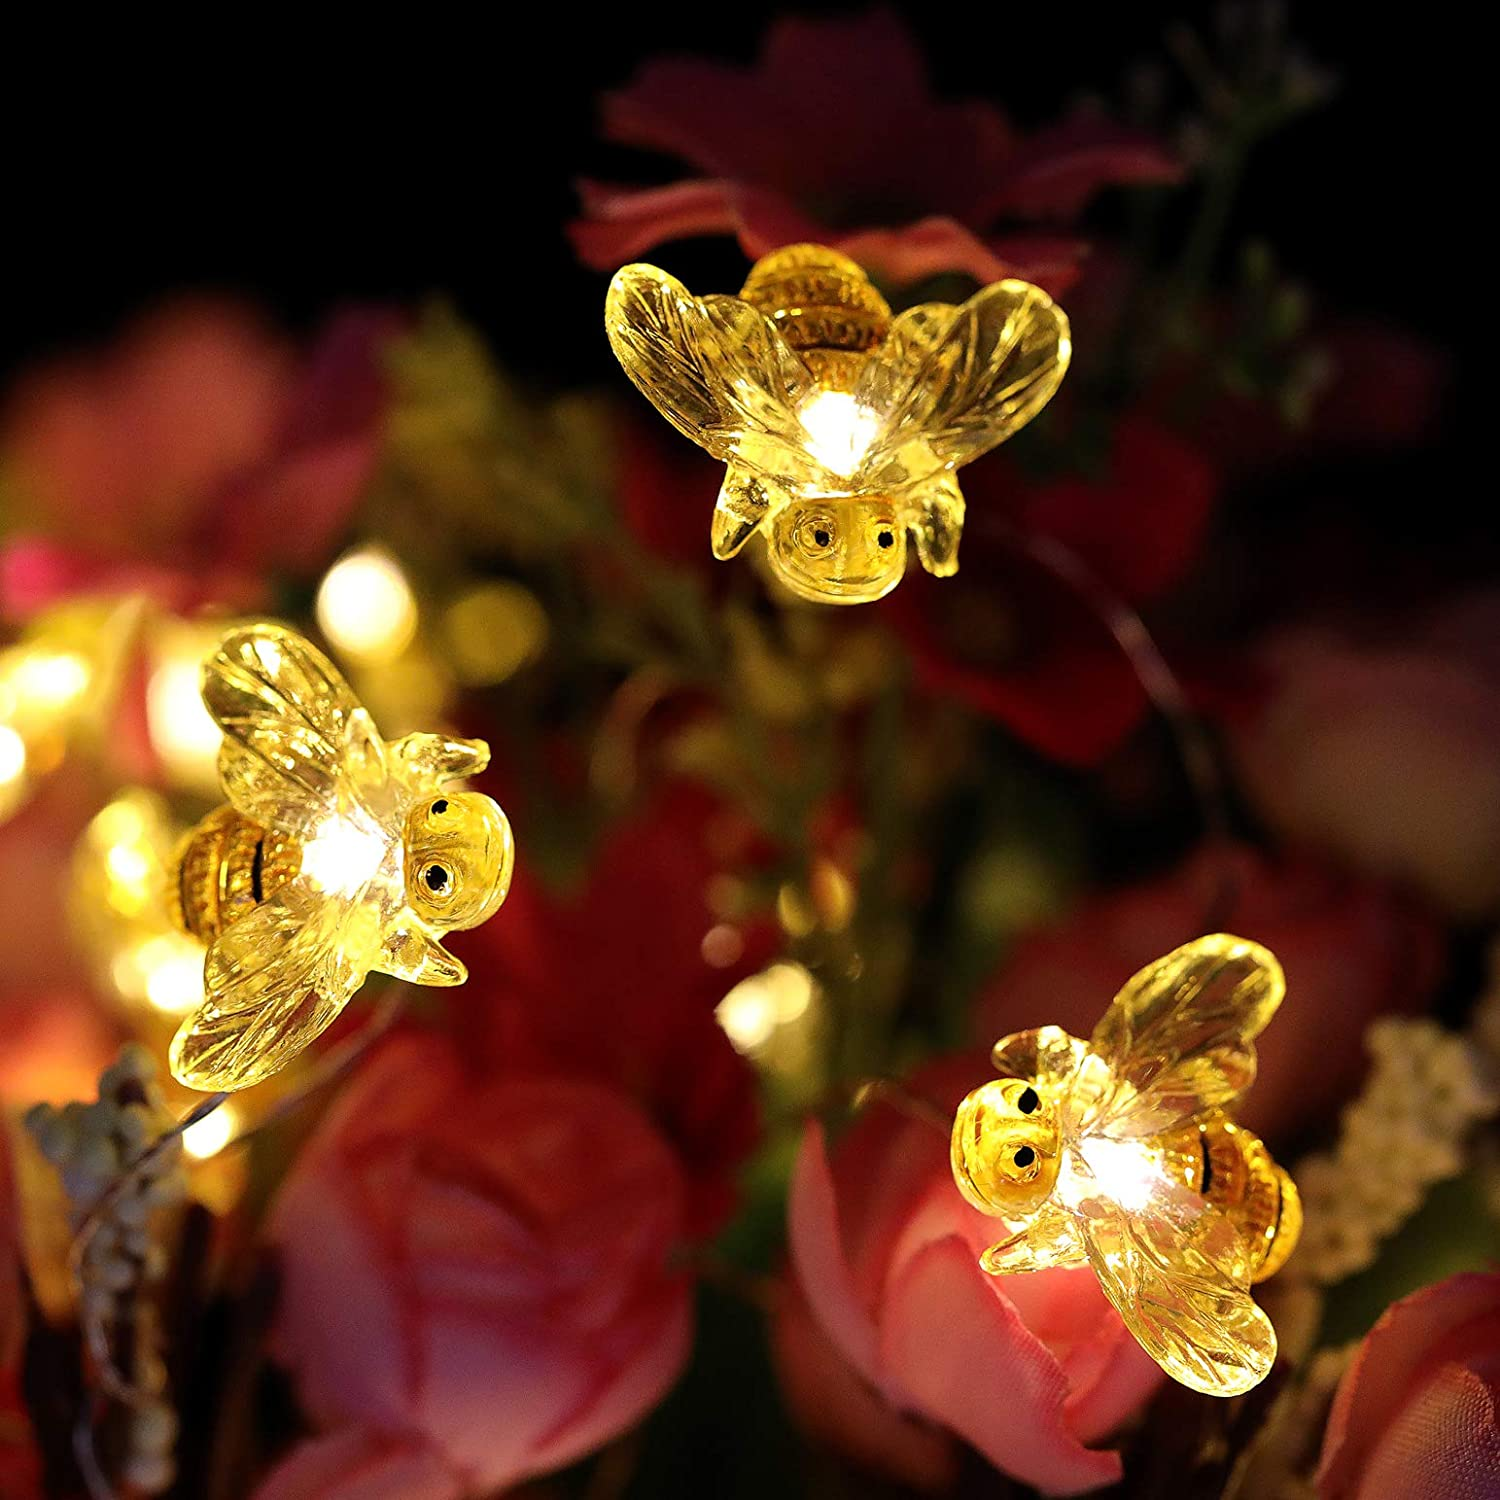 WSgift Honeybee Decorative String Lights Warm White, Remote Control with Timer 18.7 Ft 40 LED USB Plug-in Copper Wire Bee Fairy Lights for Various Decoration Projects